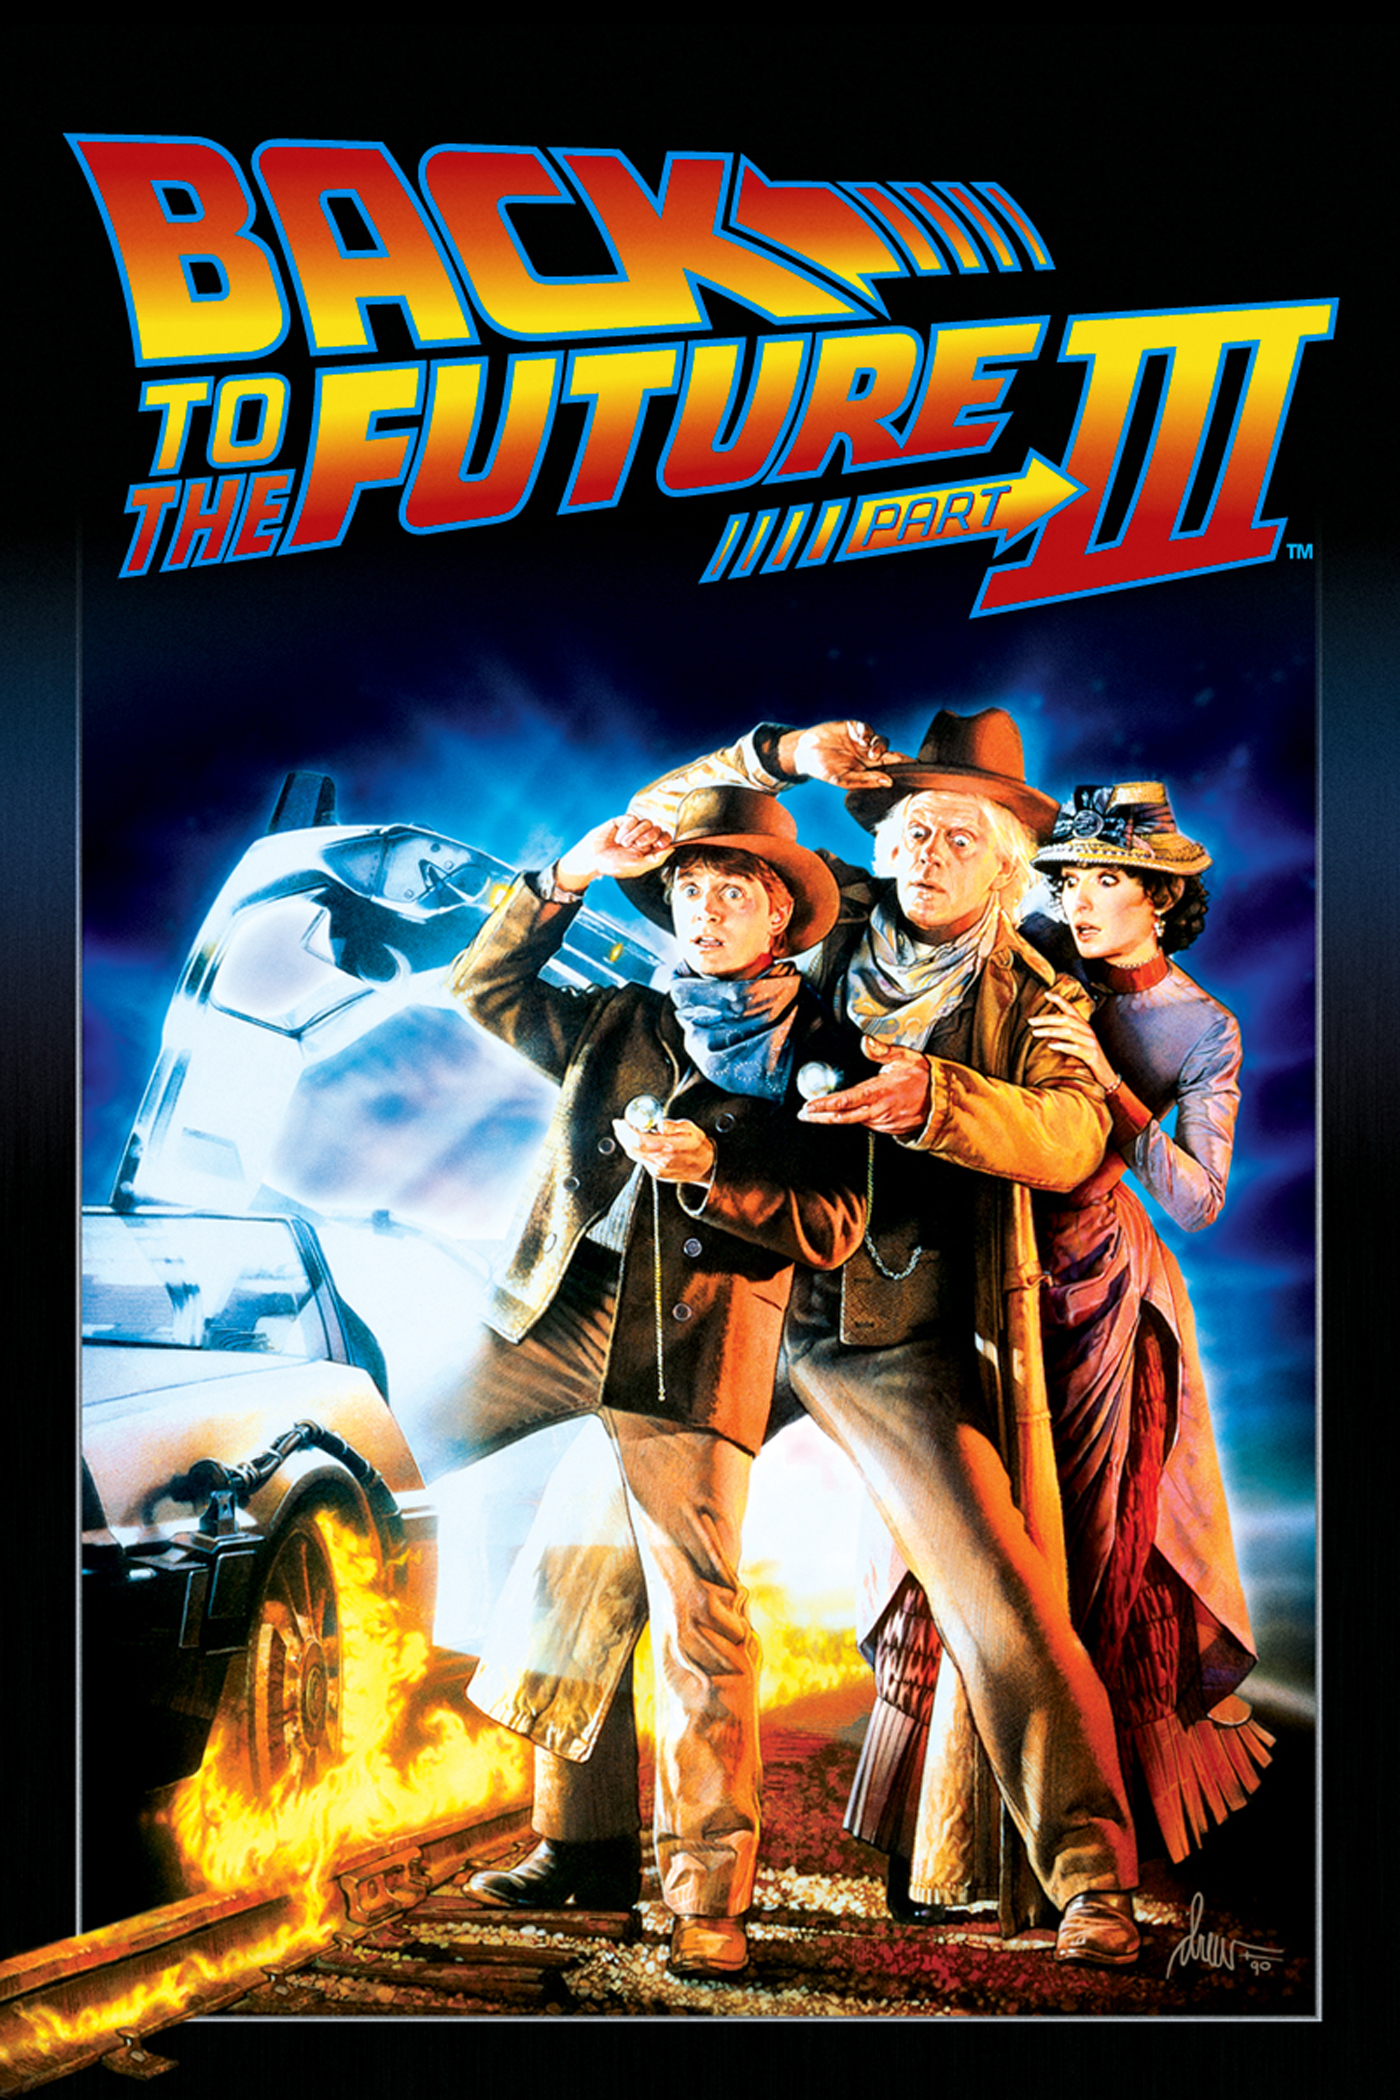 Itunes films back to the future part iii